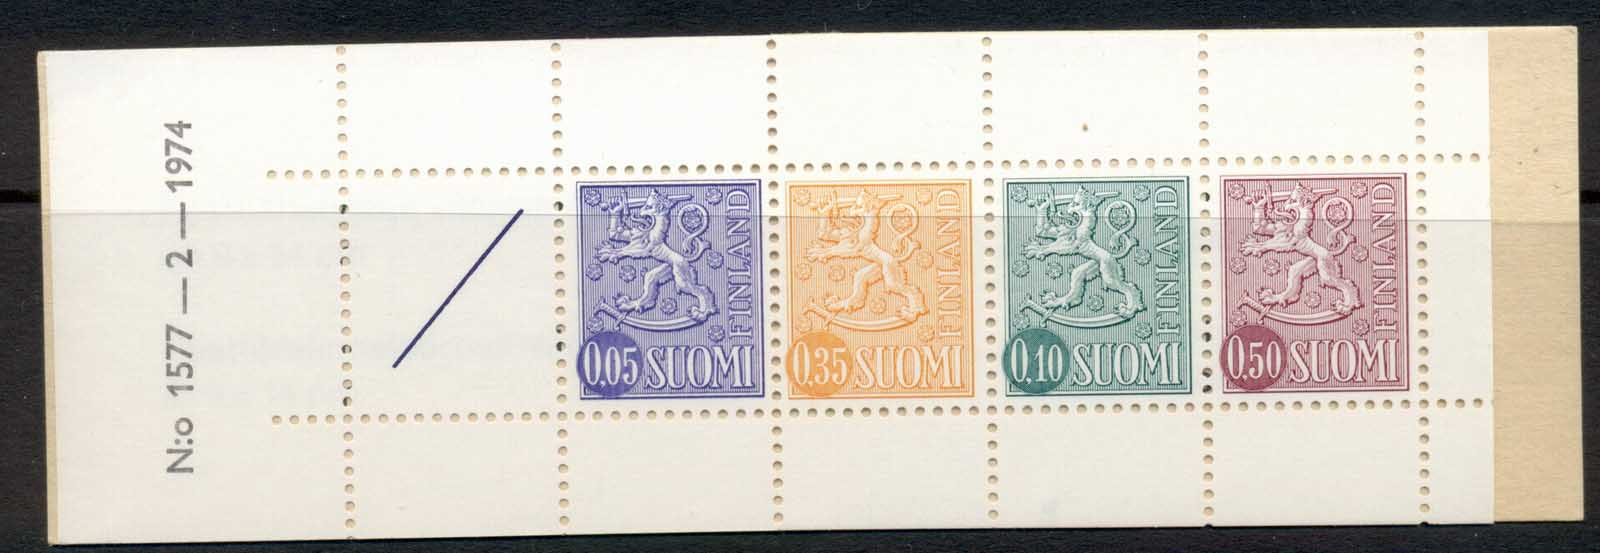 Finland 1968-78 Arms of Finland booklet 1x05,1x35,1x10,1x50, 1 label green cover MUH